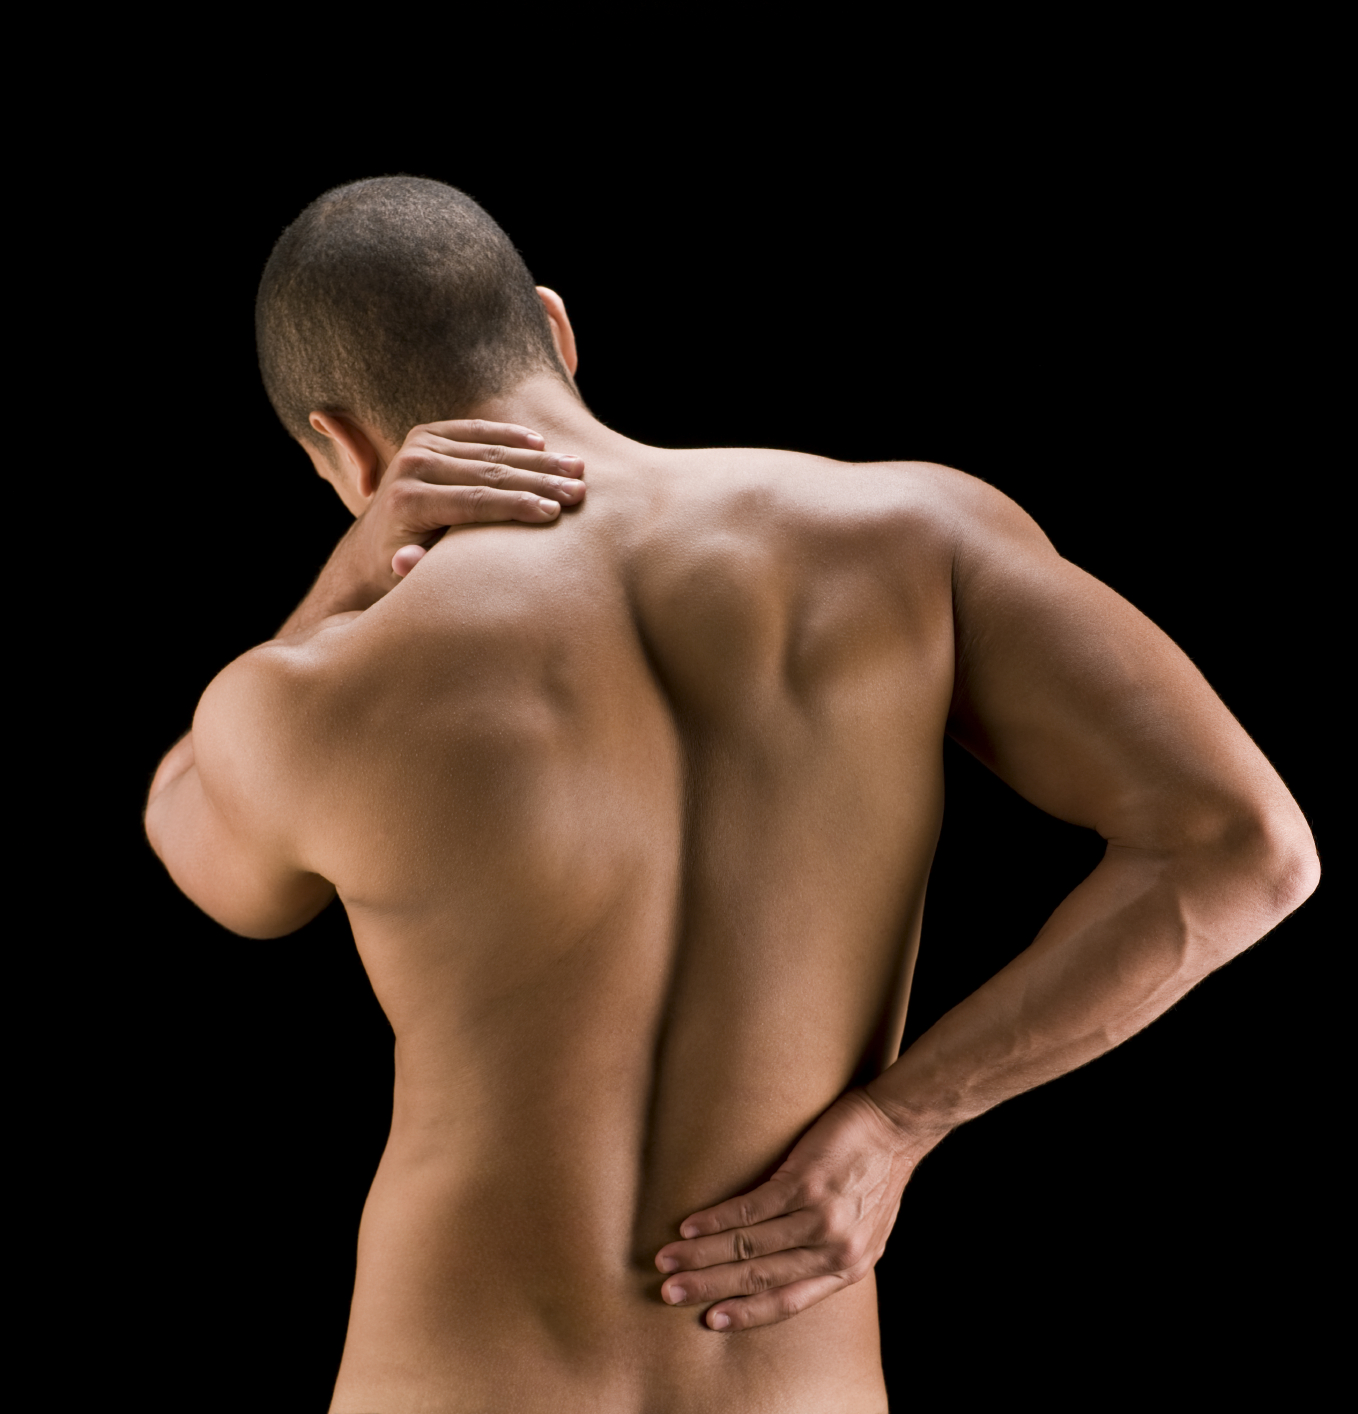 Wallpaper: Naturally How to Reduce Your Back Pain